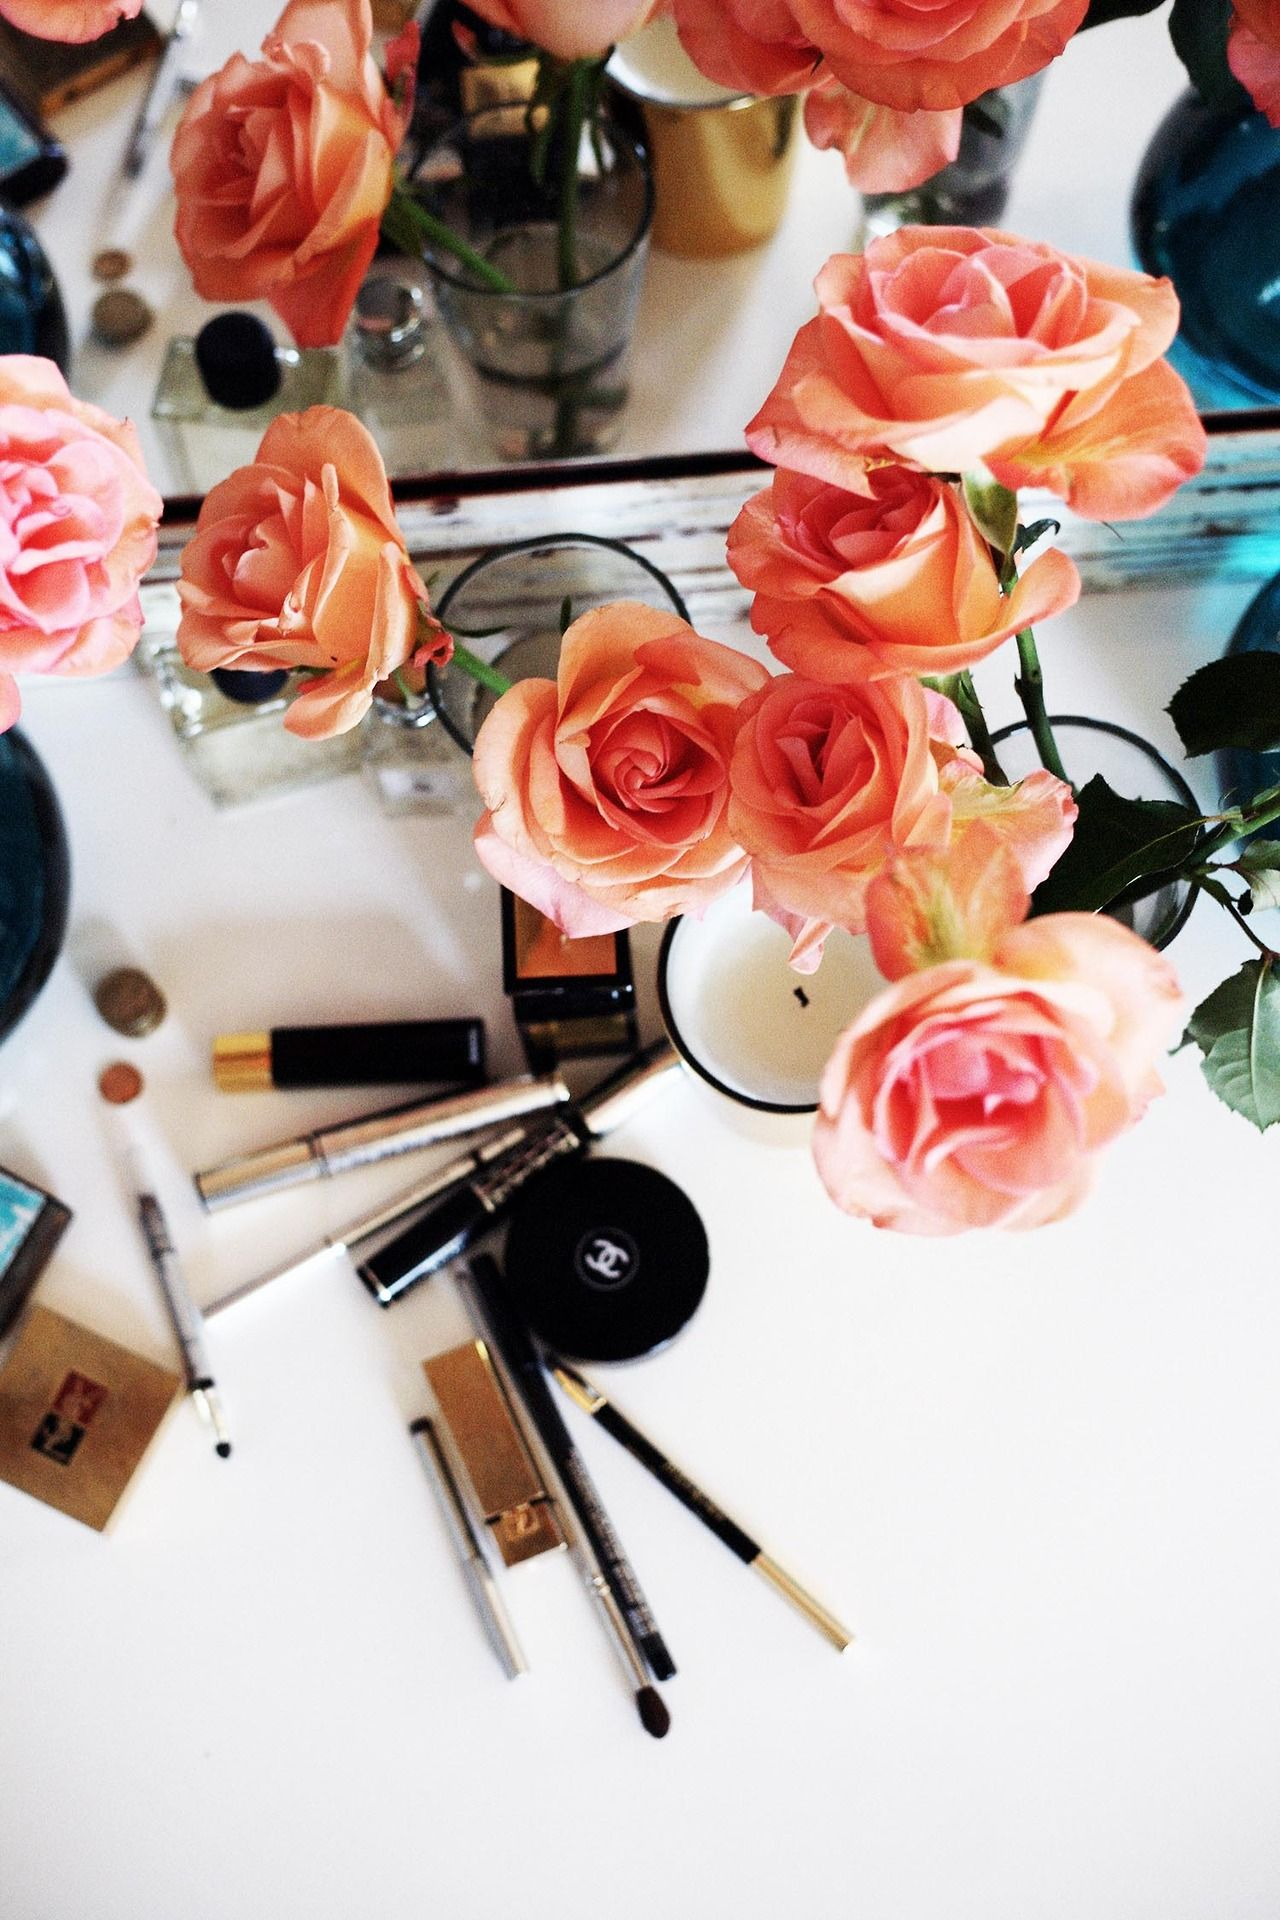 Makeup roses new house pinterest rose makeup and cape town